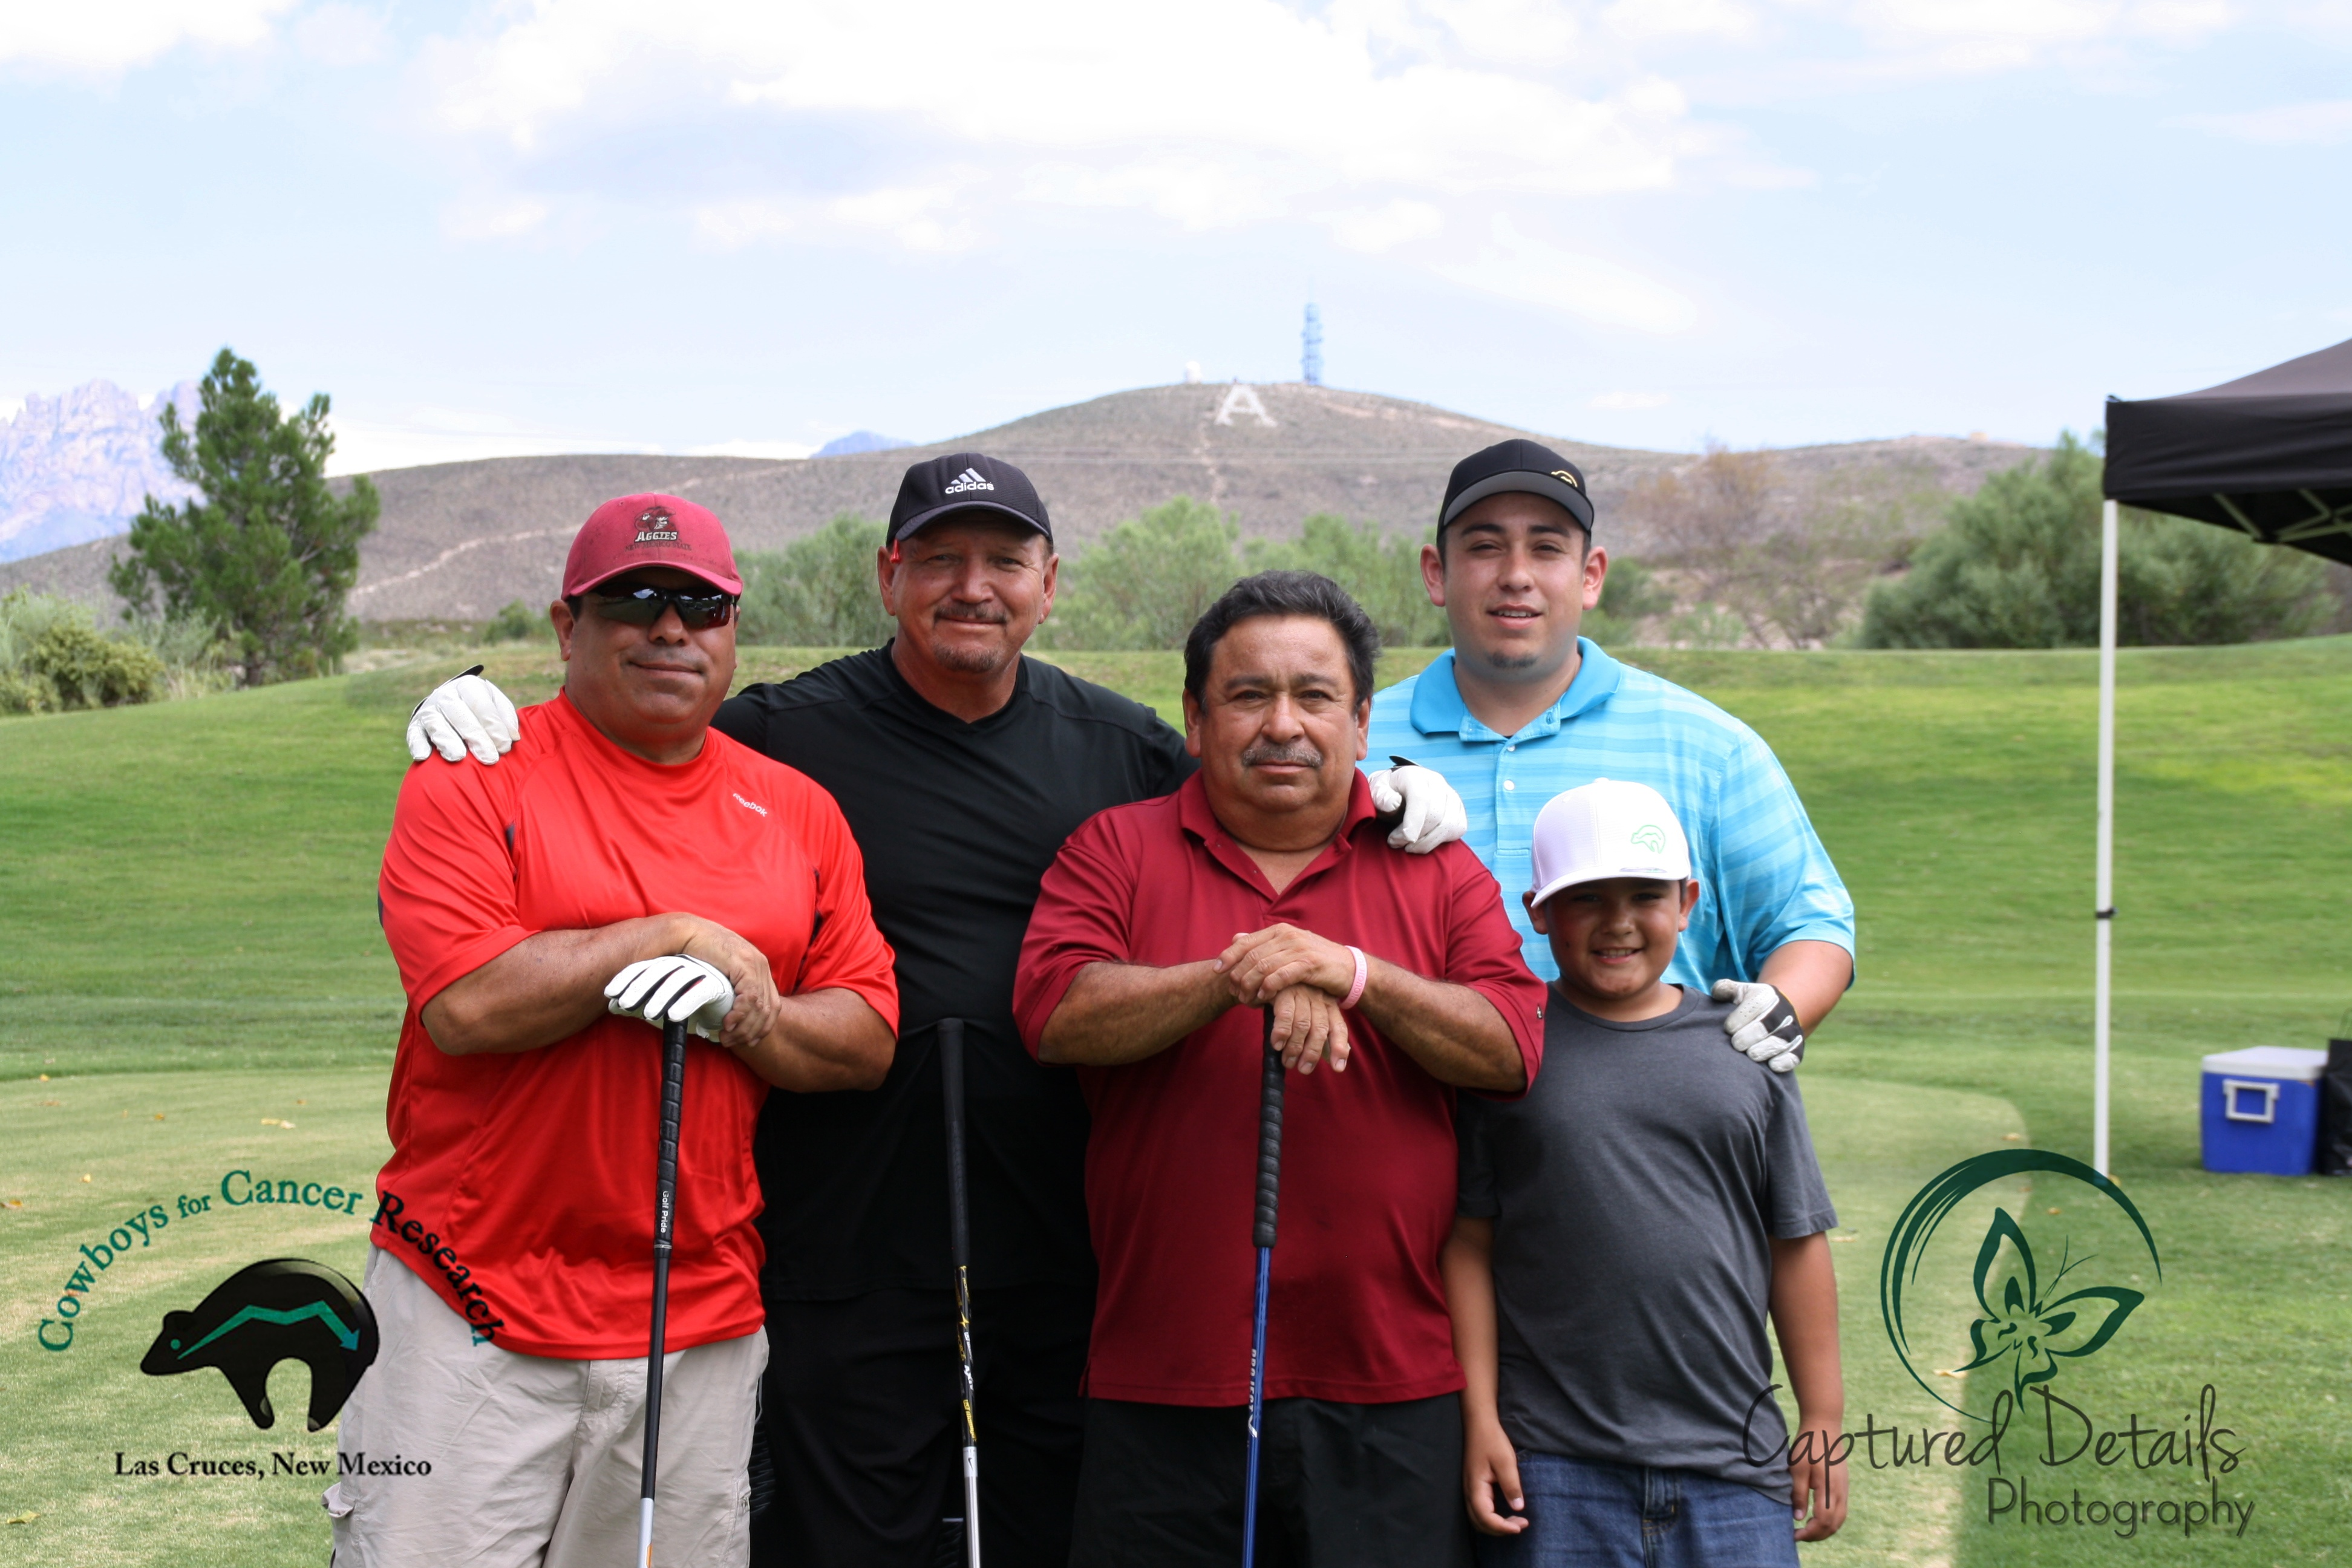 C4CR 2015 Golf Bobby Lujan Team morning teams Javier Holguin Closest to the pin